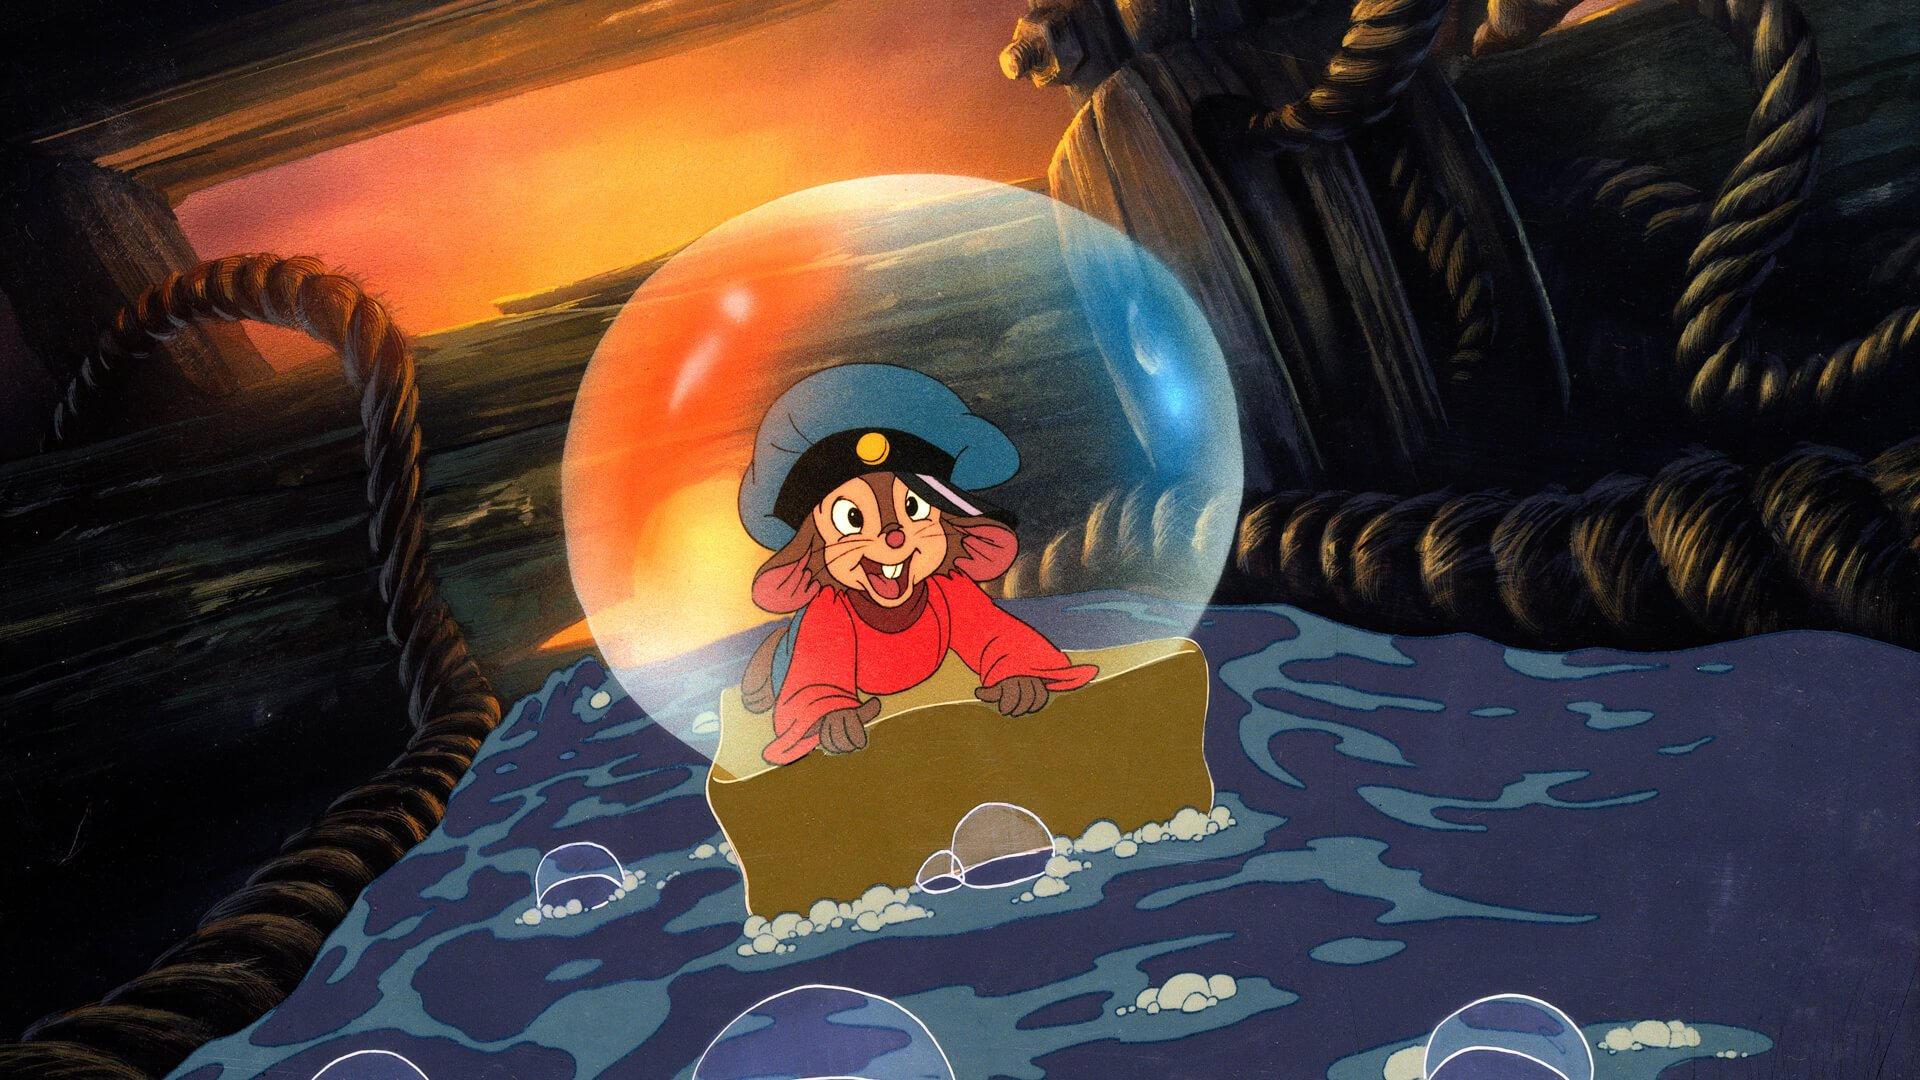 american tail 1986 photo 4 1920x1080 1 12 Of The Best Musical And Dance Films From The 80s - Which Is Your Favourite?